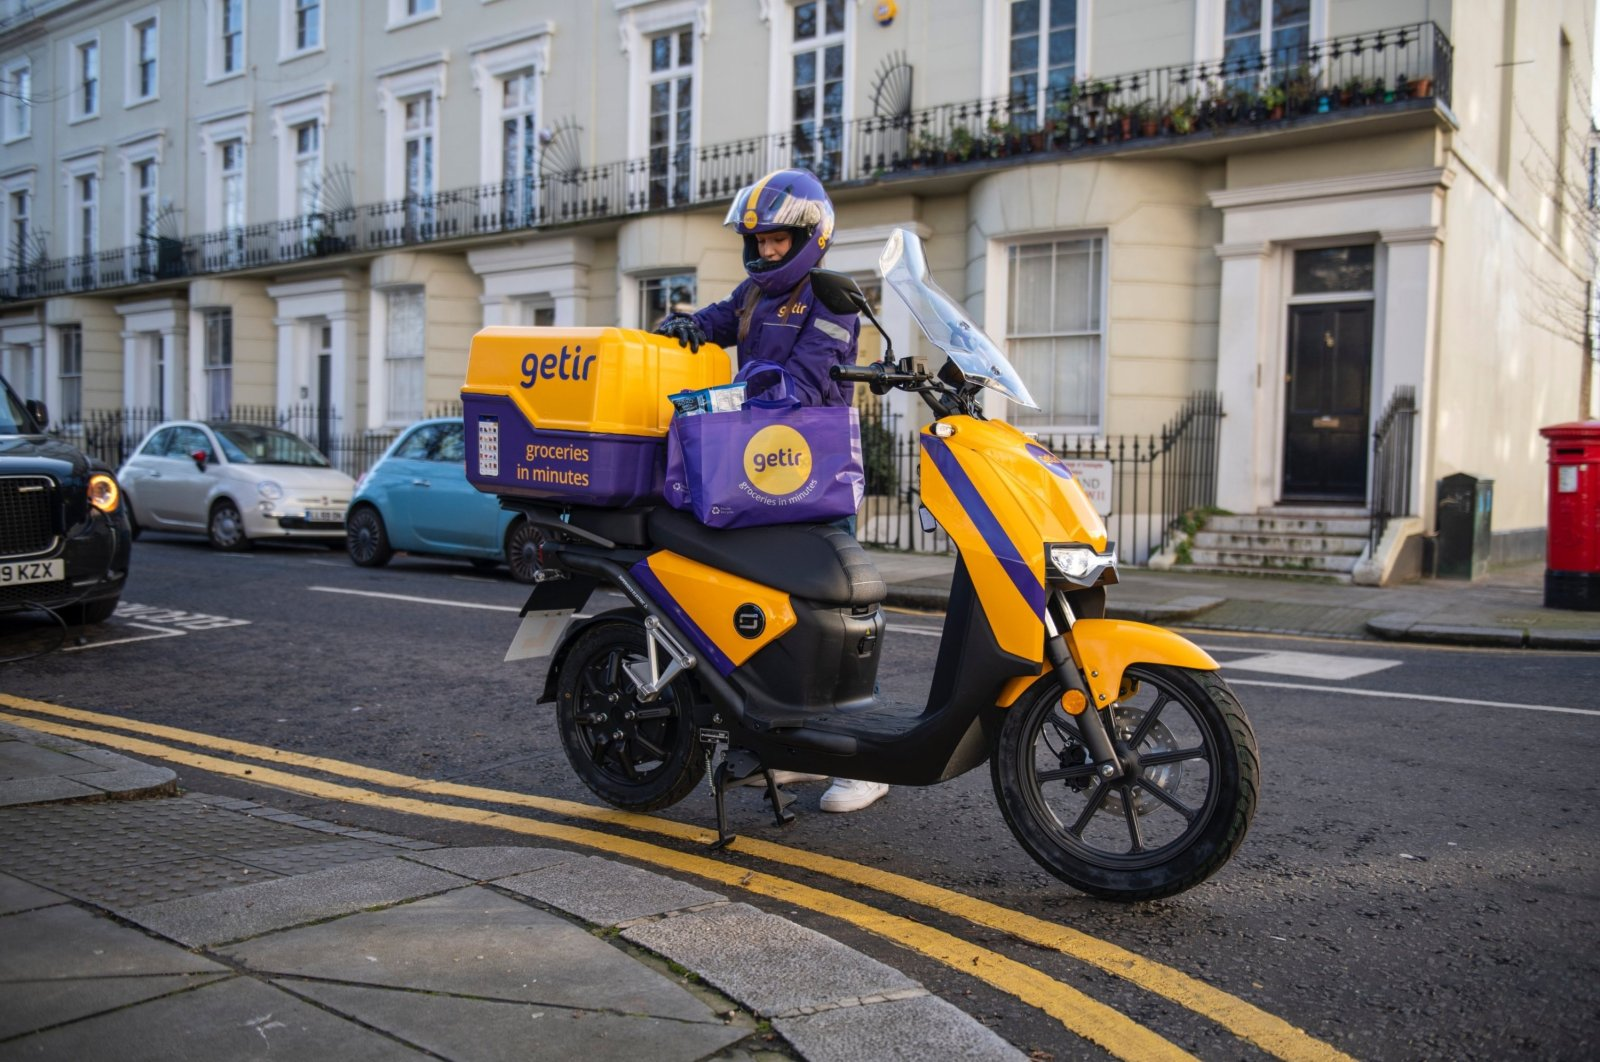 A delivery driver from Getir, Turkey's second unicorn, works next to his bike, London, U.K., Jan. 27, 2021. (Photo Courtesy of Getir)